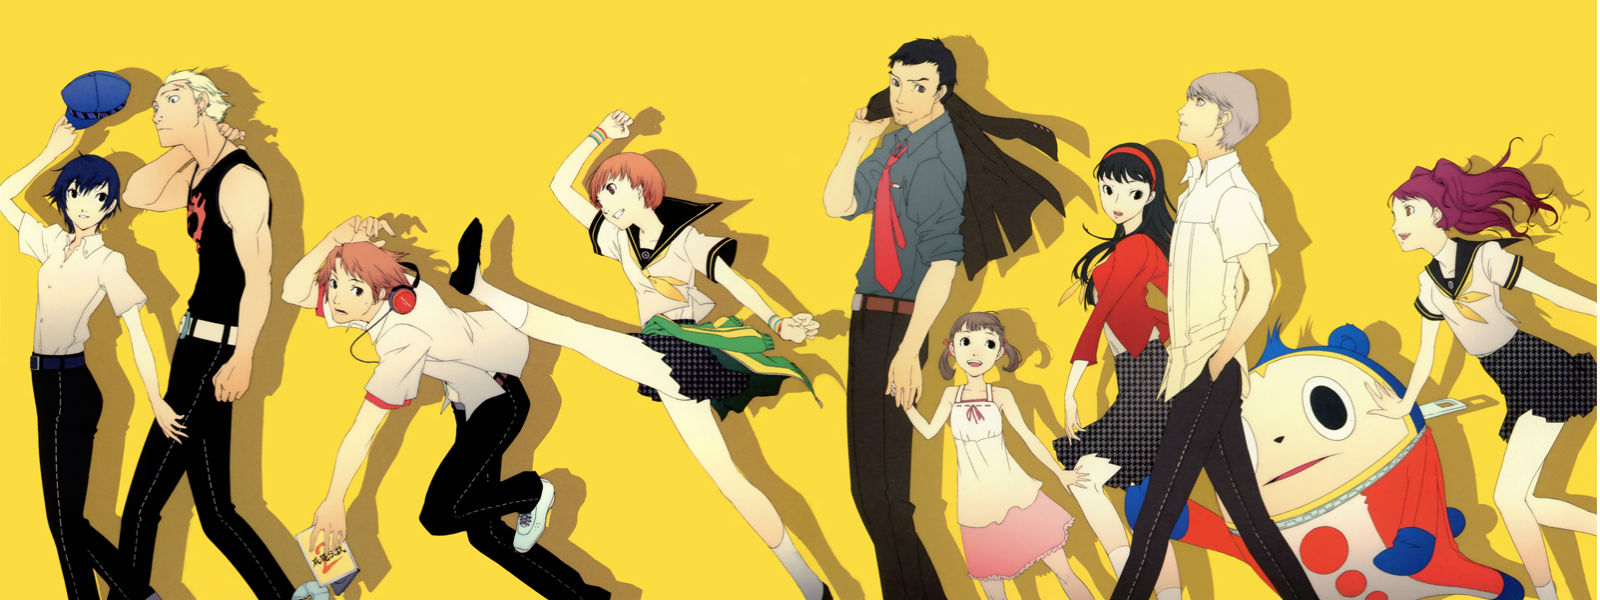 persona-4-featured.jpg